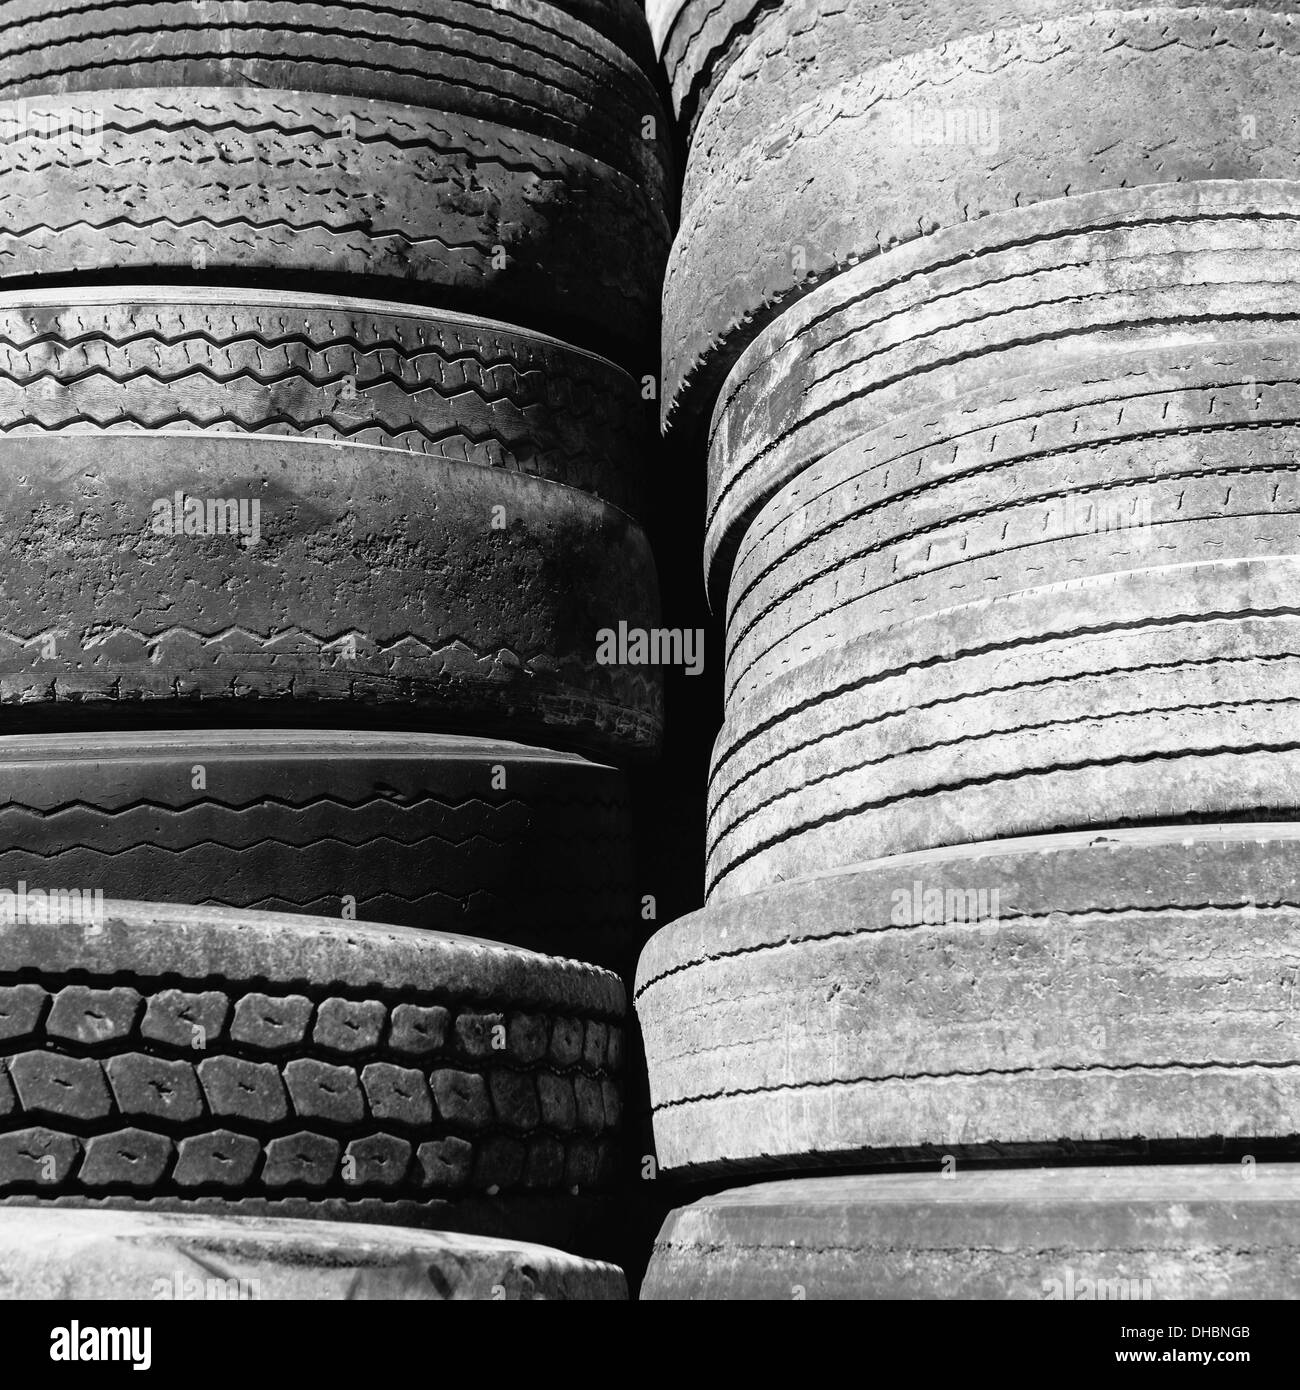 Close of a stack of discarded worn old automobile tyres, near Wendover in Utah. - Stock Image